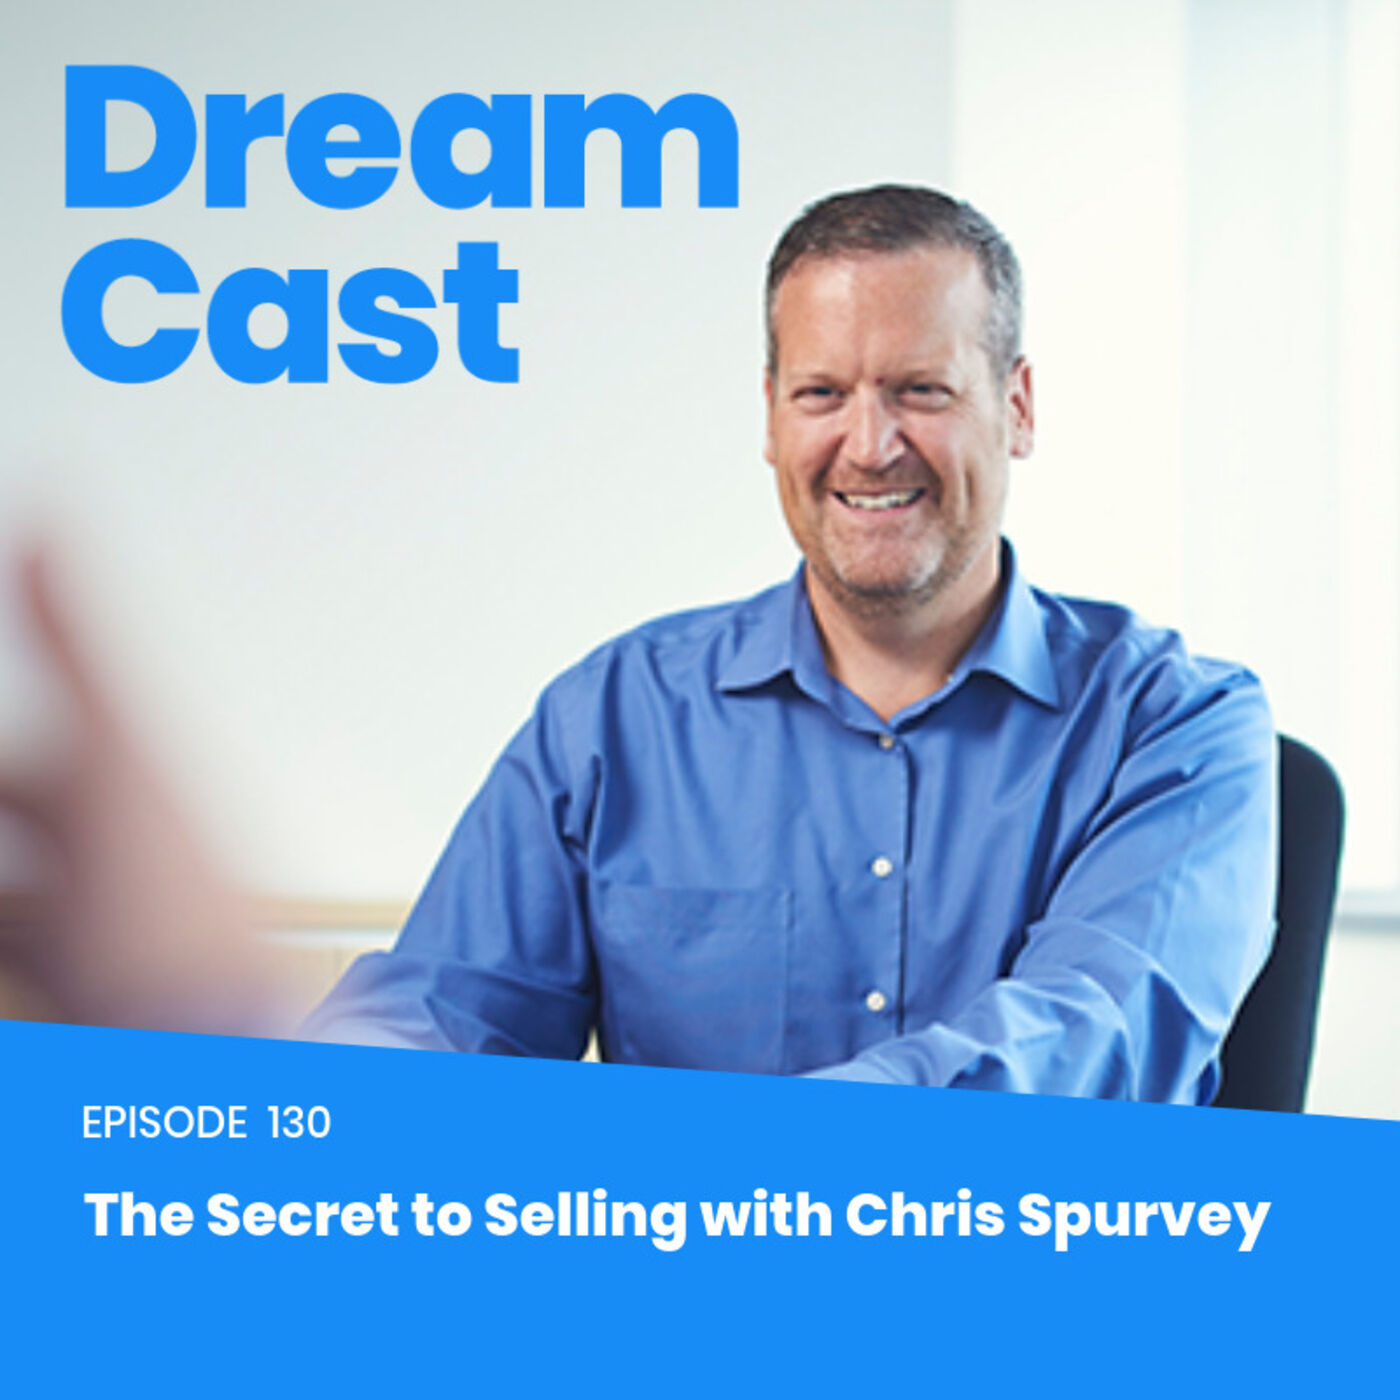 Episode 130 - The Secret to Selling with Chris Spurvey